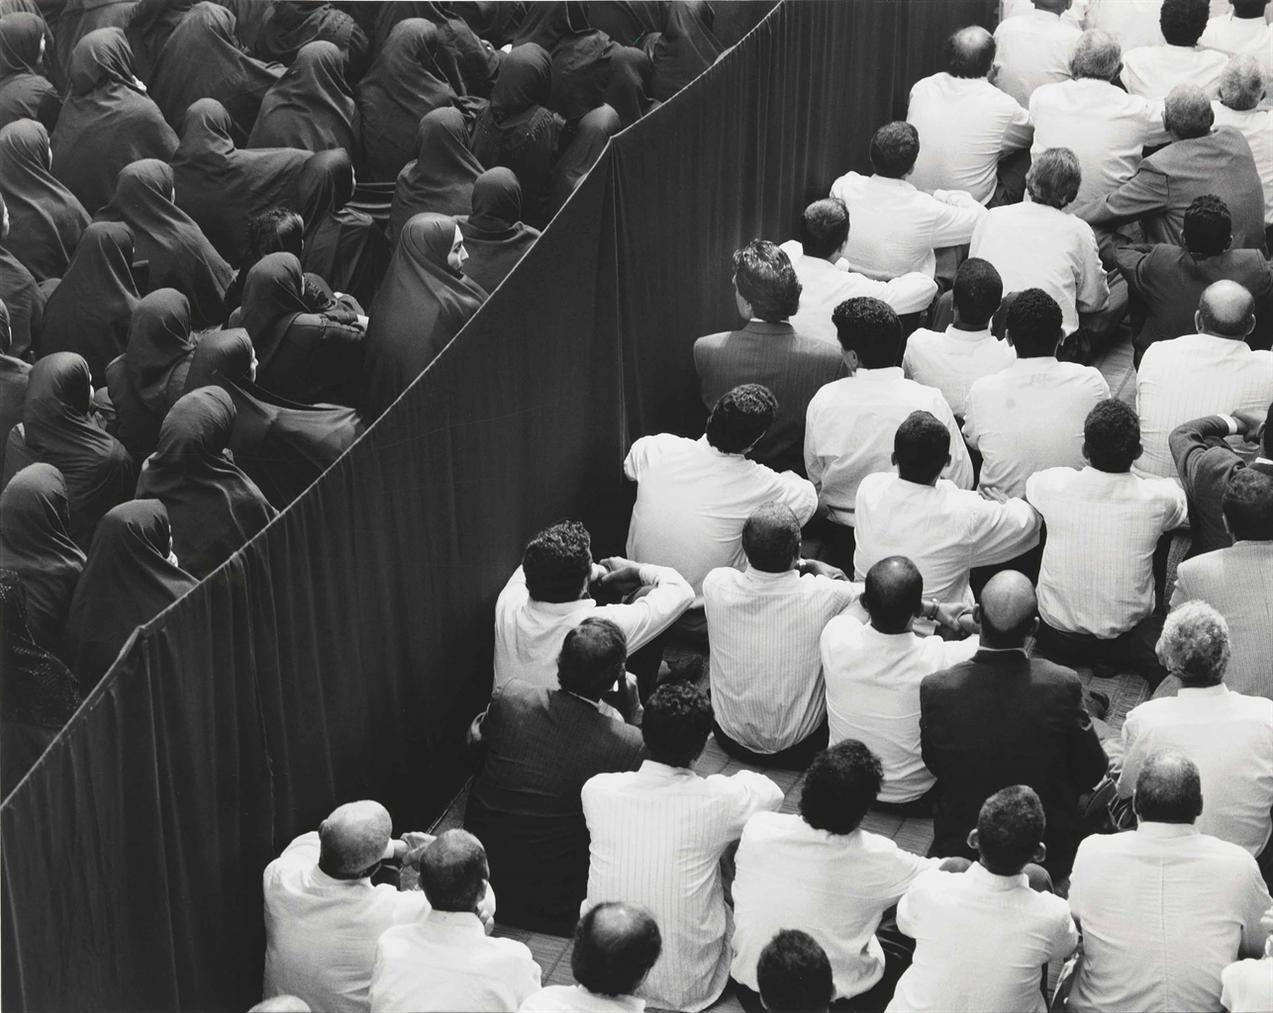 Shirin Neshat-Fervor Series (Crowd From Back, Close Up)-2000